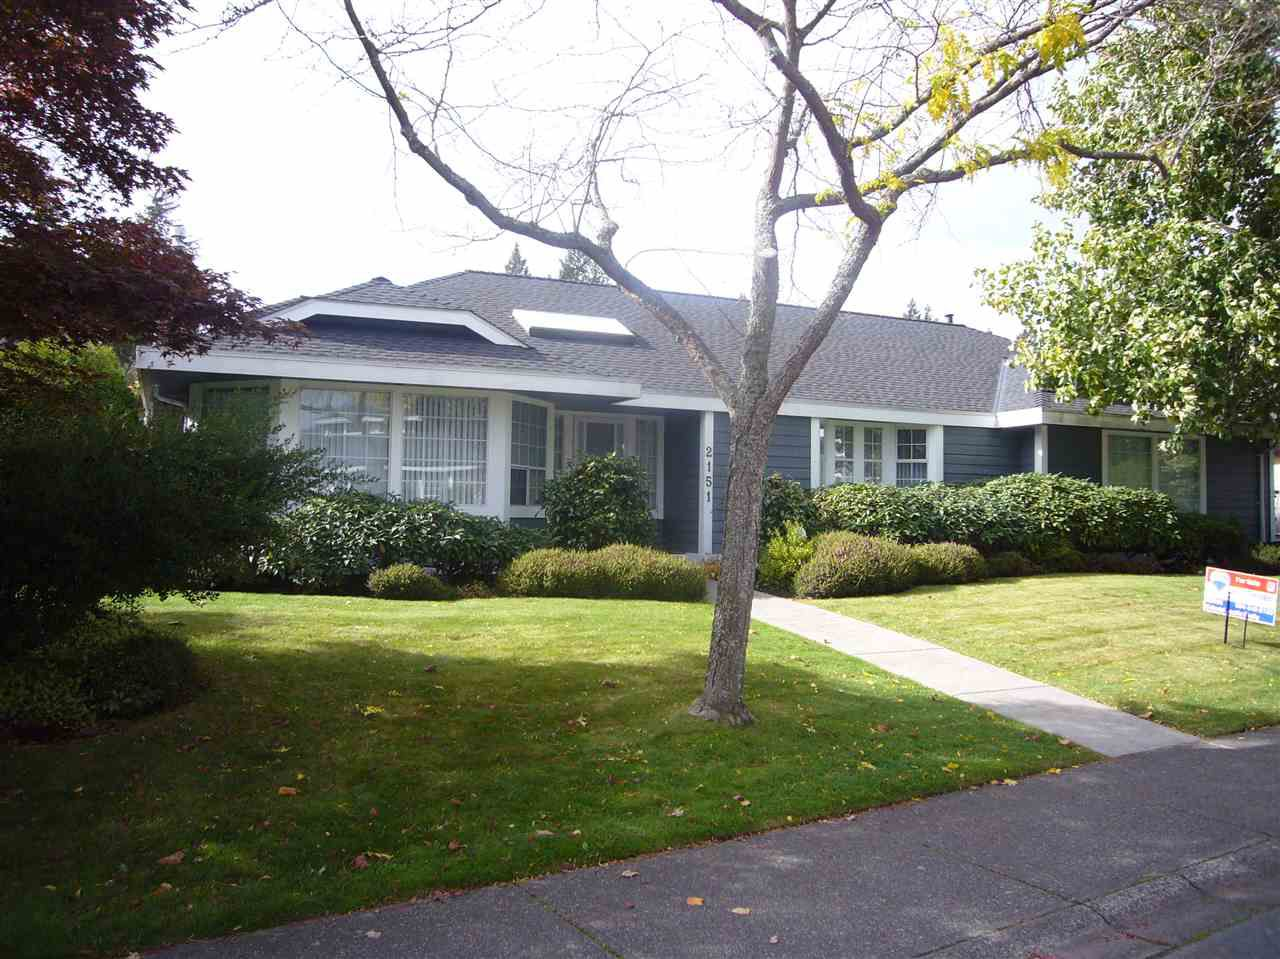 """Main Photo: 2151 148A Street in Surrey: Sunnyside Park Surrey House for sale in """"Meridian by the Sea"""" (South Surrey White Rock)  : MLS®# R2115503"""